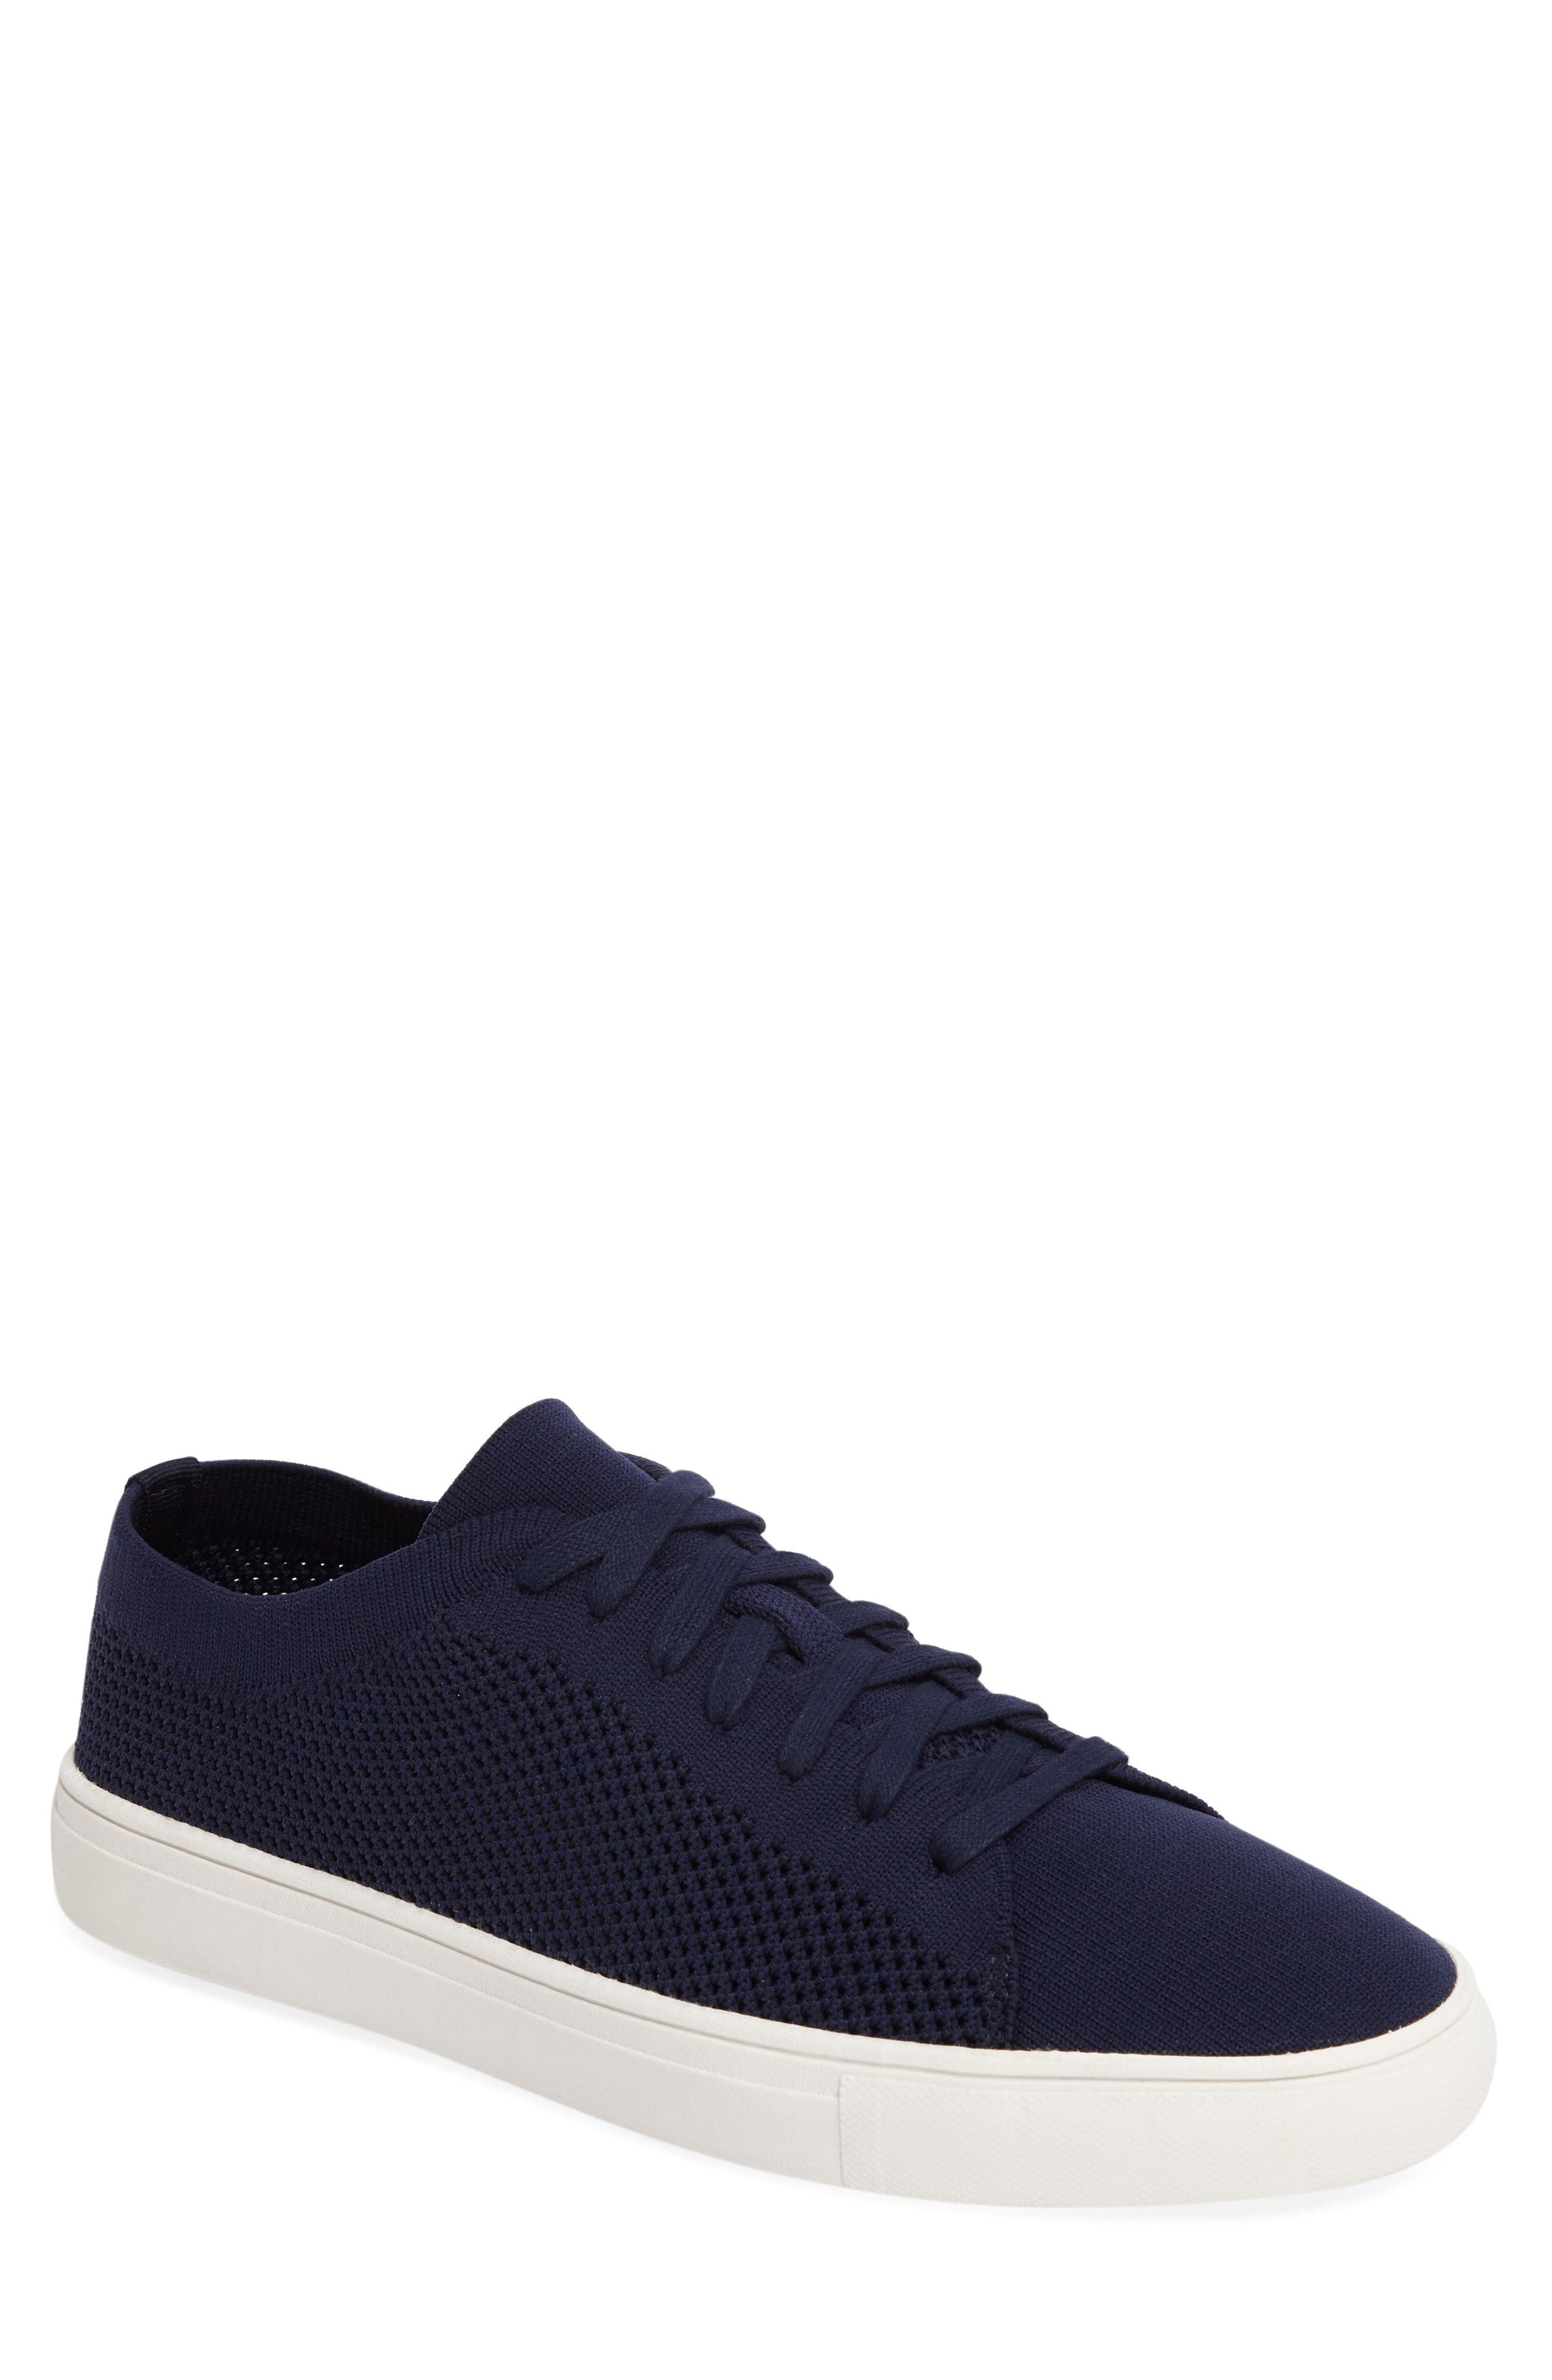 Reaction Kenneth Cole On the Road Woven Sneaker (Men)